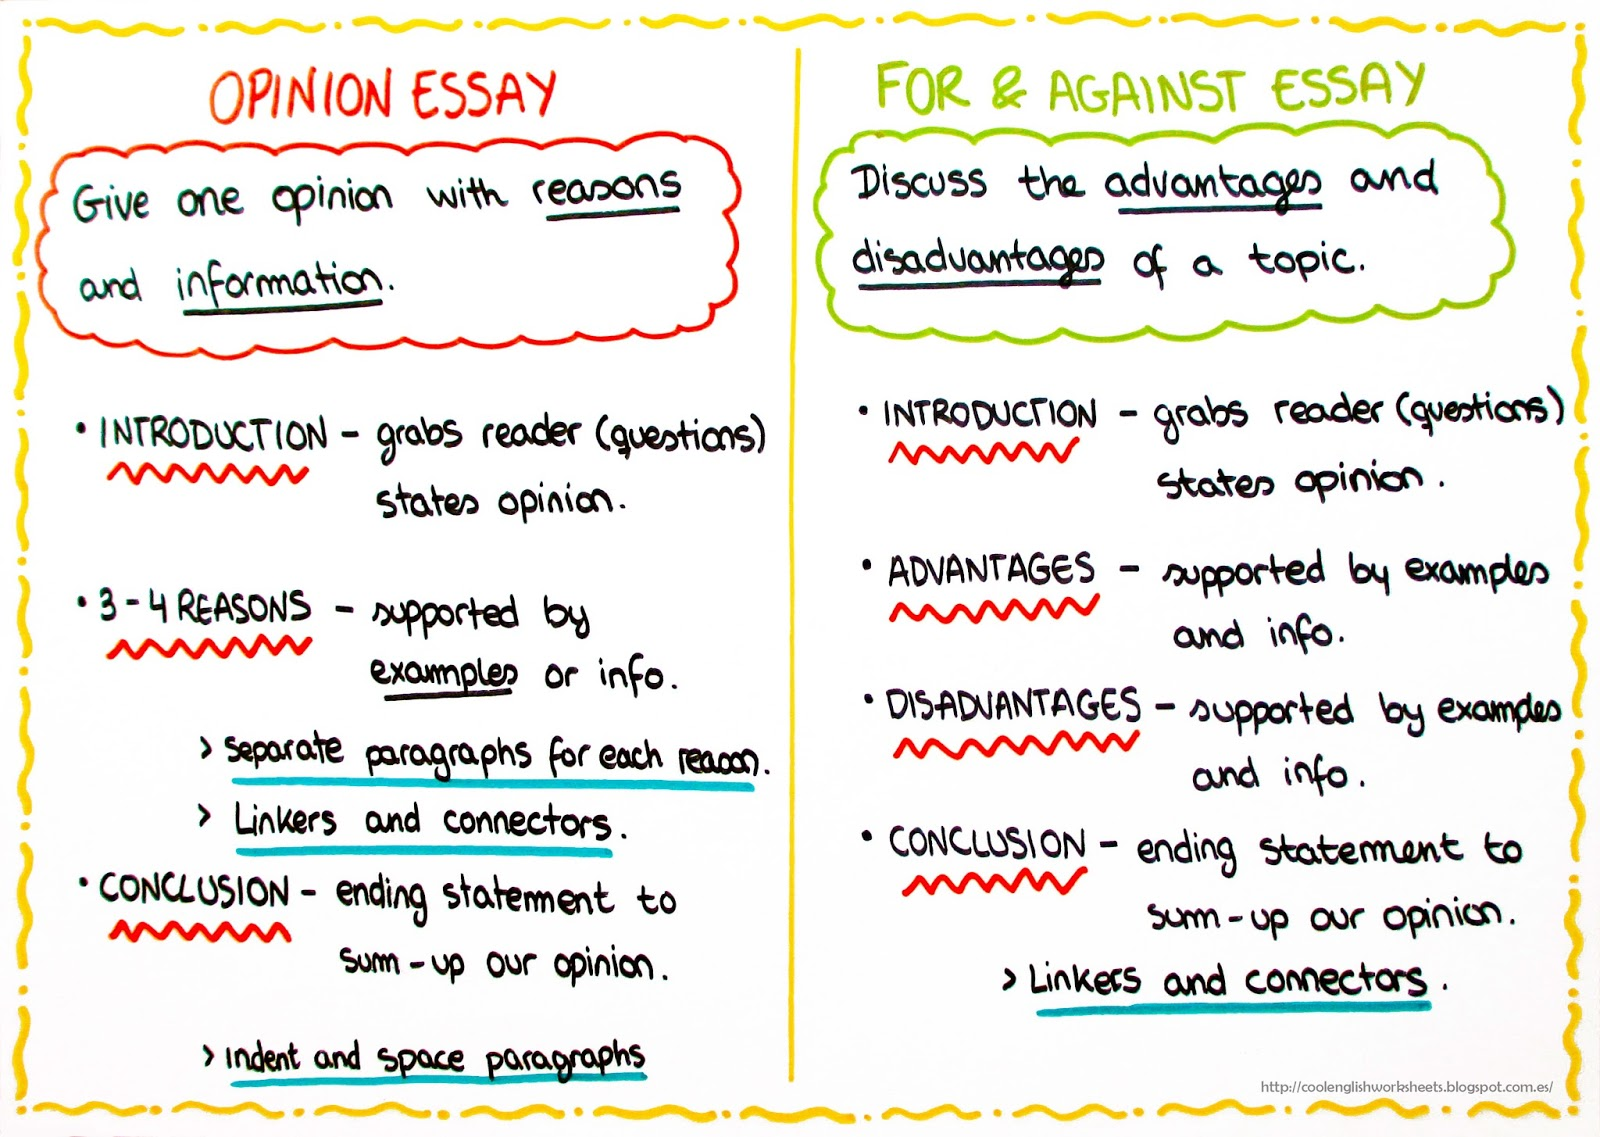 opinion essay linkers